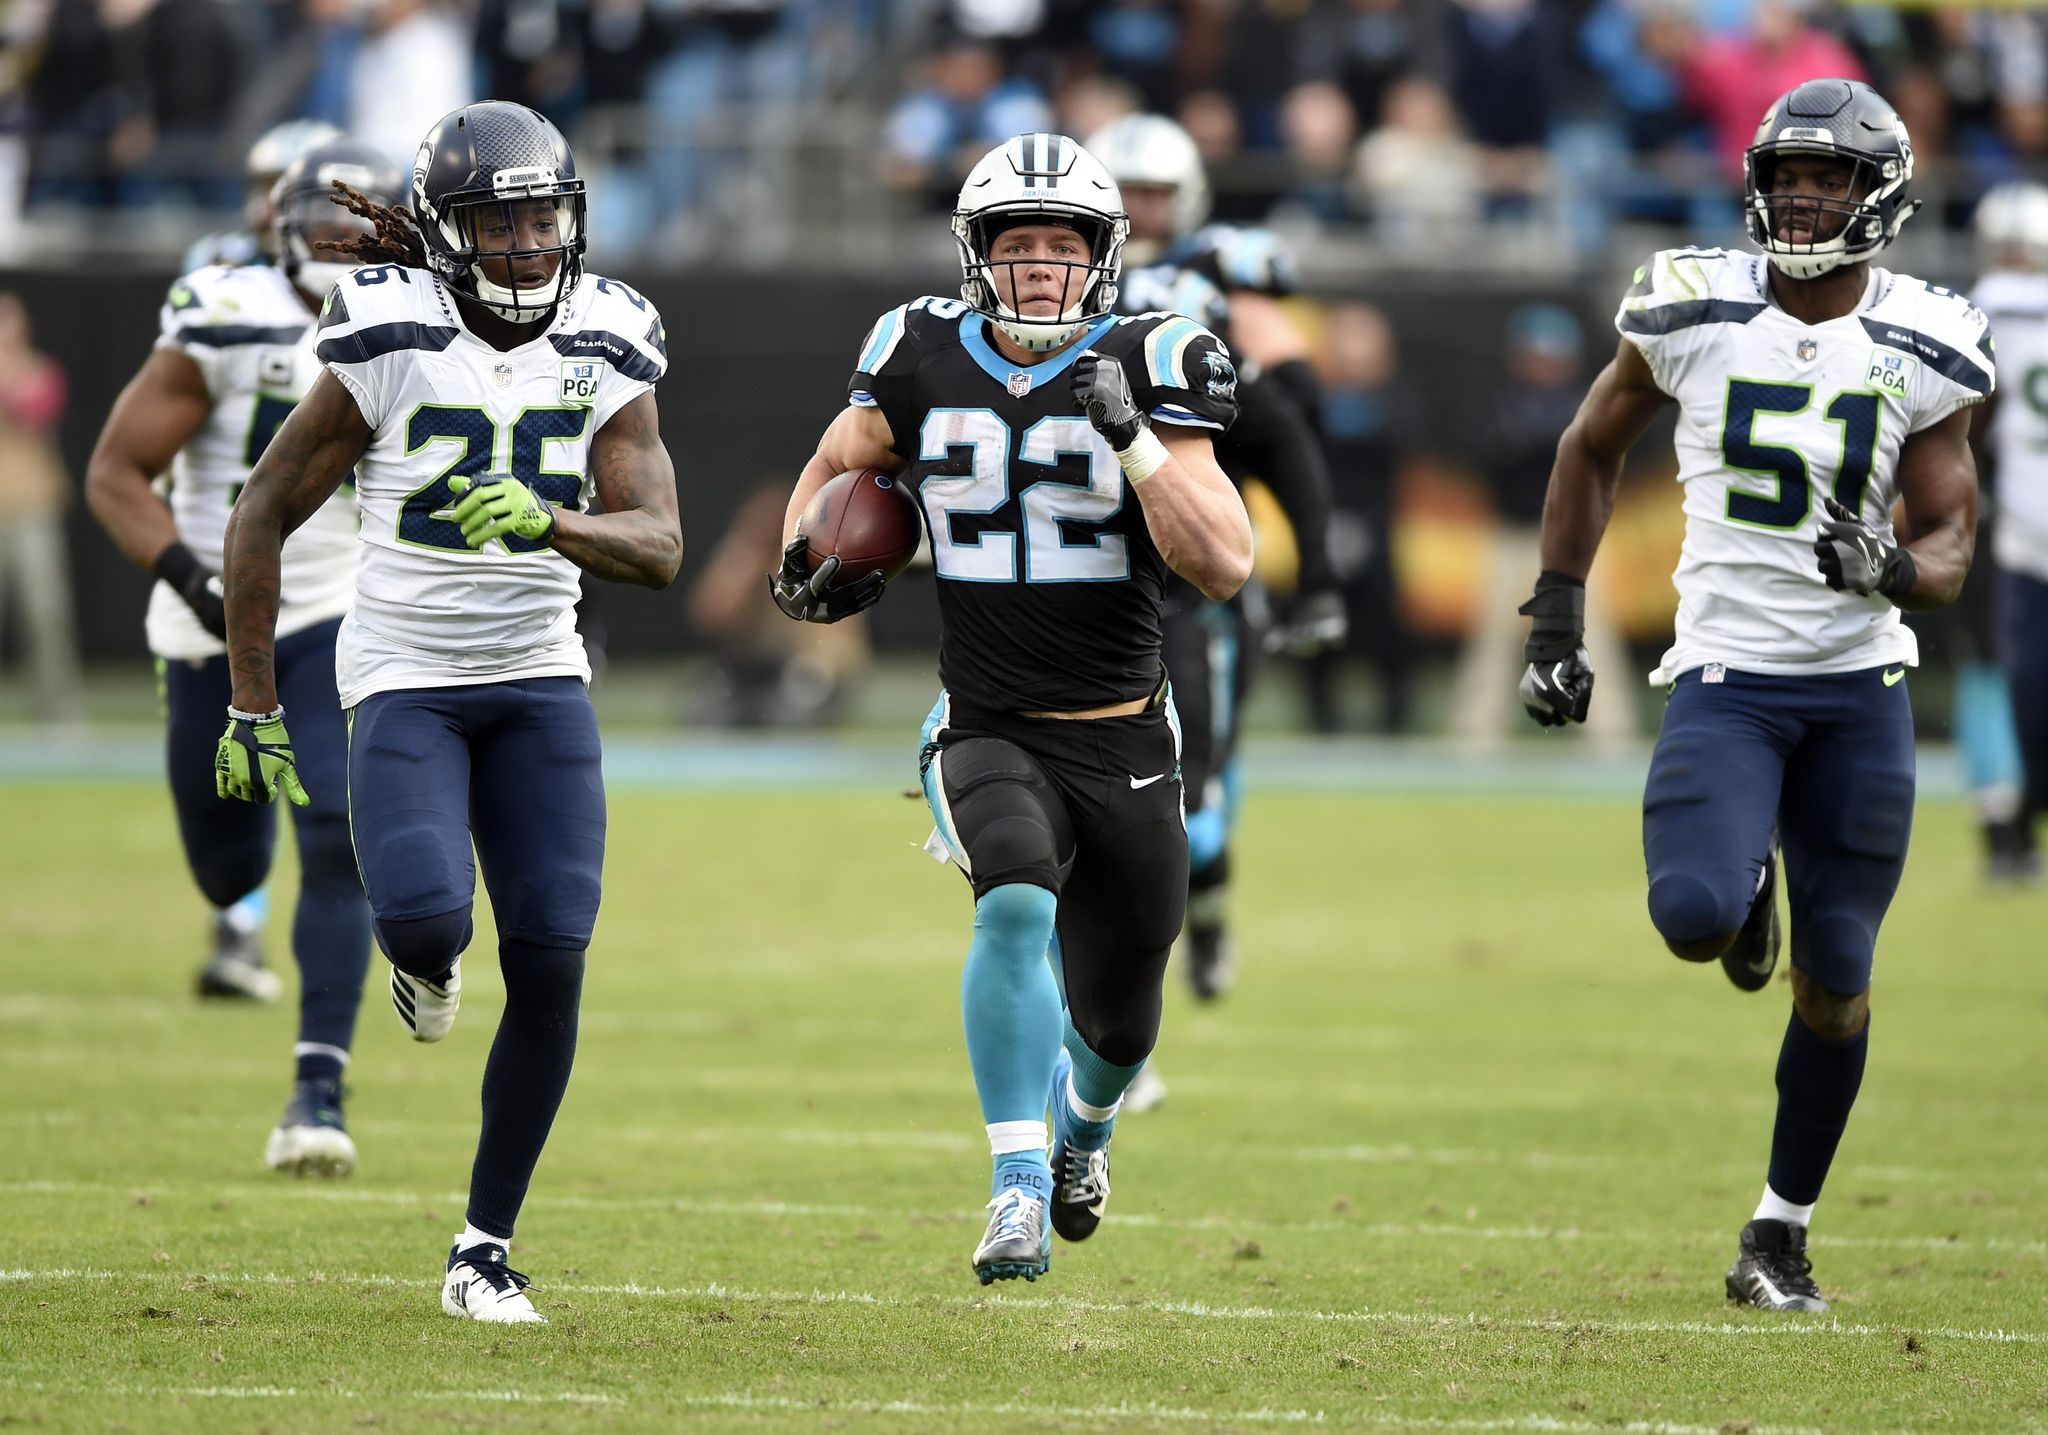 Seahawks_panthers_football_96823_s2048x1435